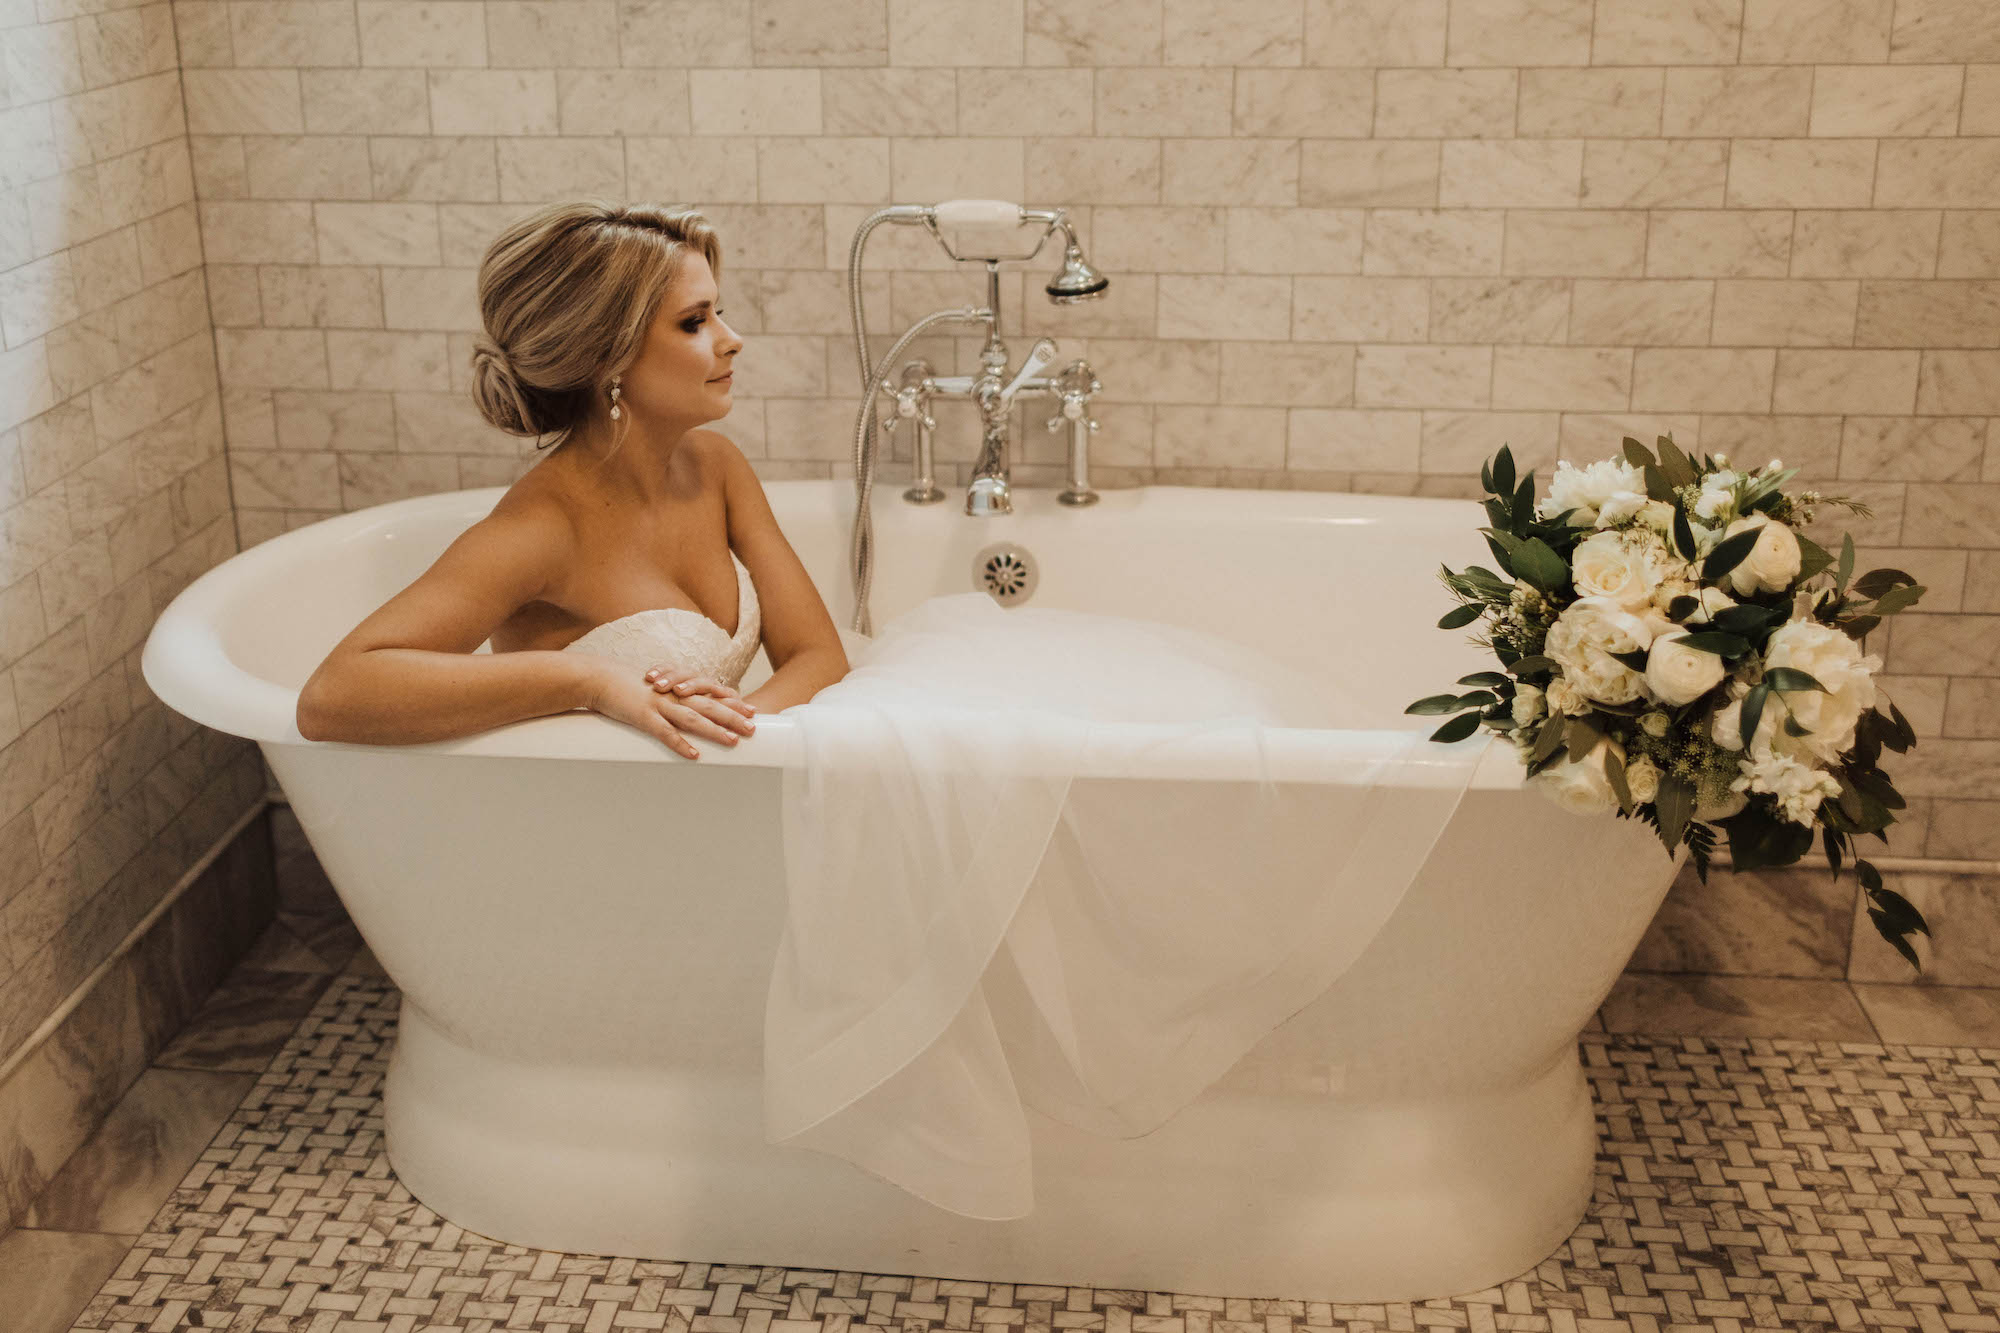 Tampa Bay Creative Bride in Luxurious Free Standing Bathtub with Garden Inspired White Roses and Greenery Eucalyptus Floral Bouquet